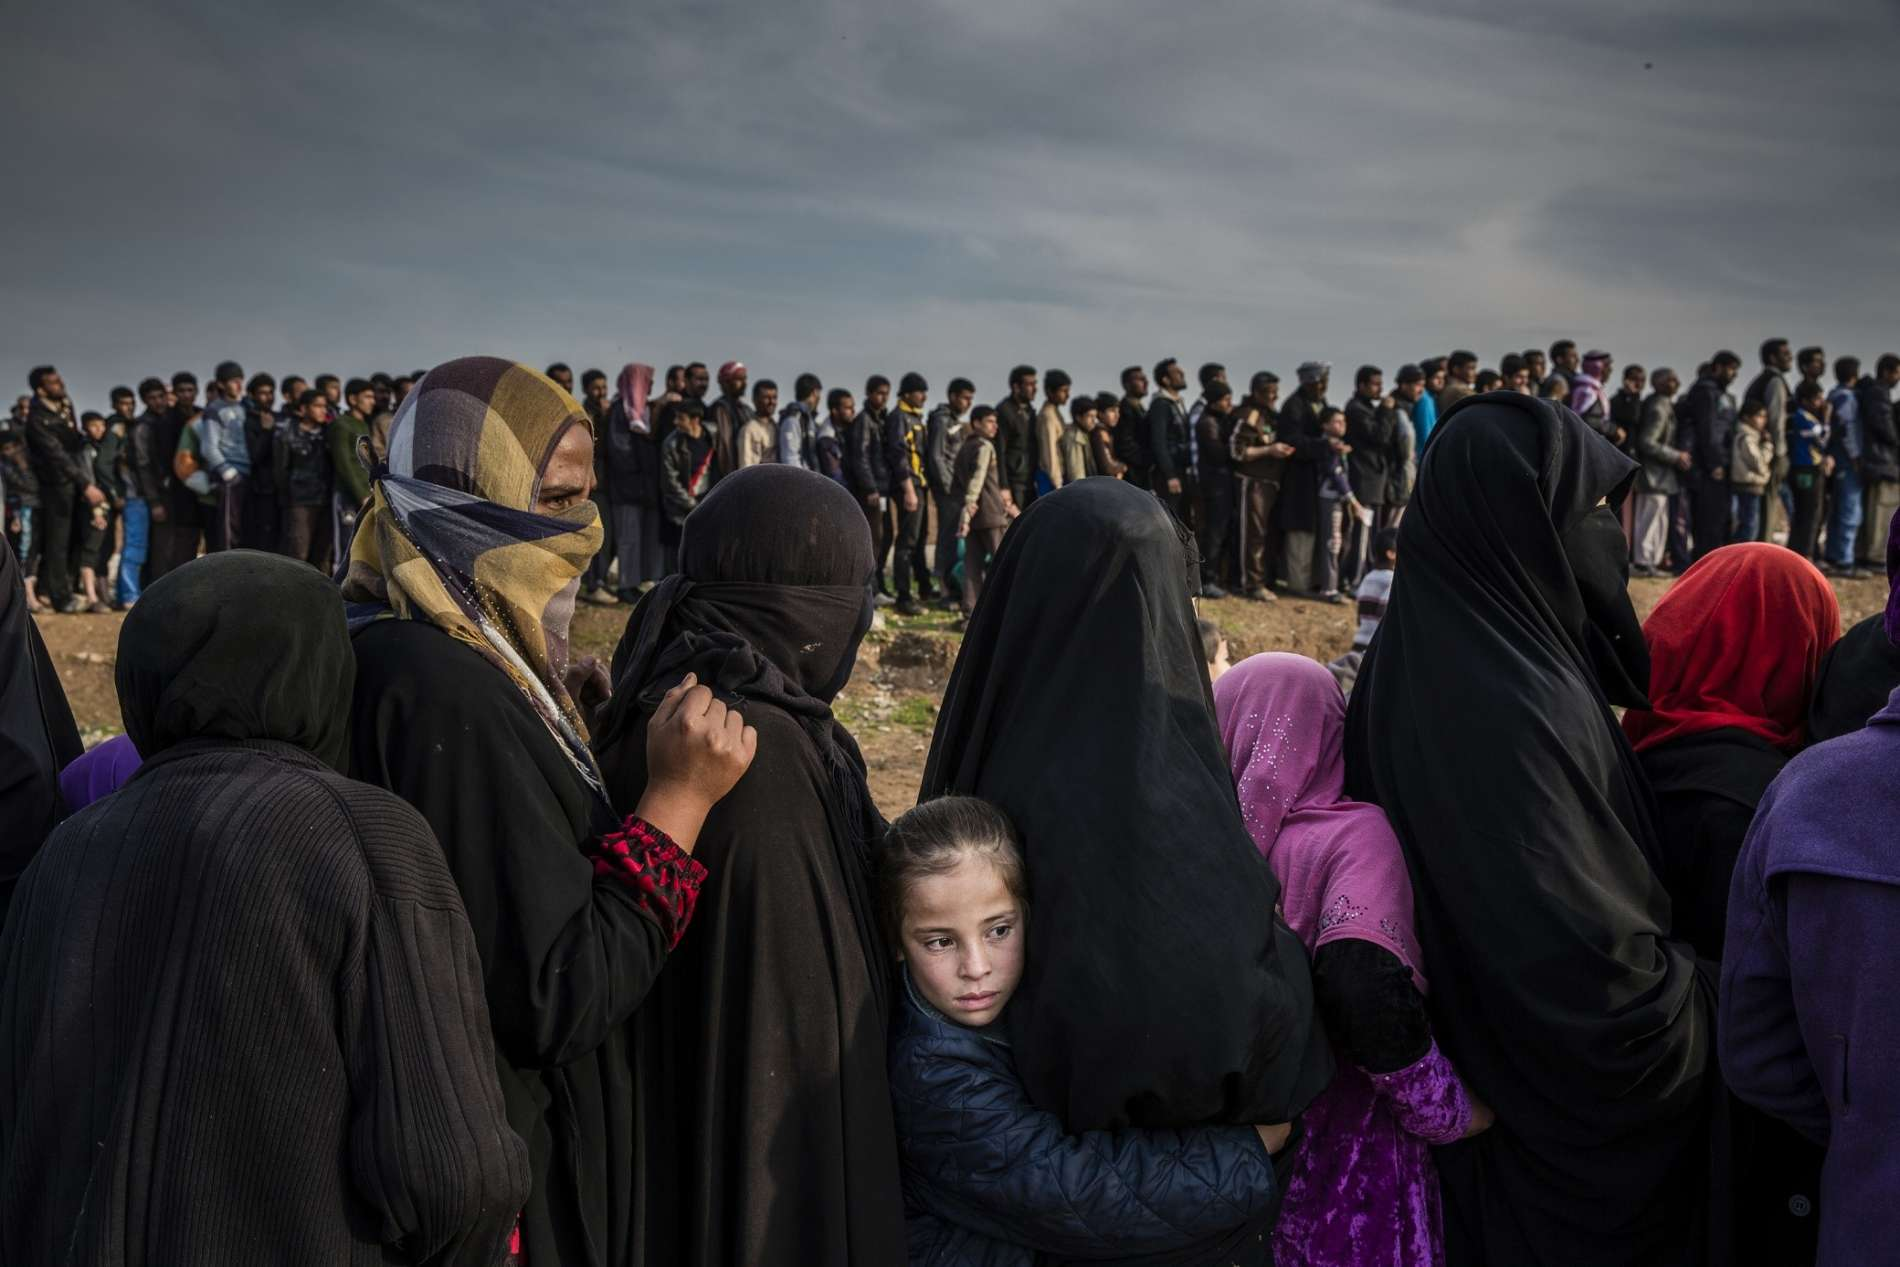 The Battle for Mosul - Lined Up for an Aid Distribution © Ivor Prickett